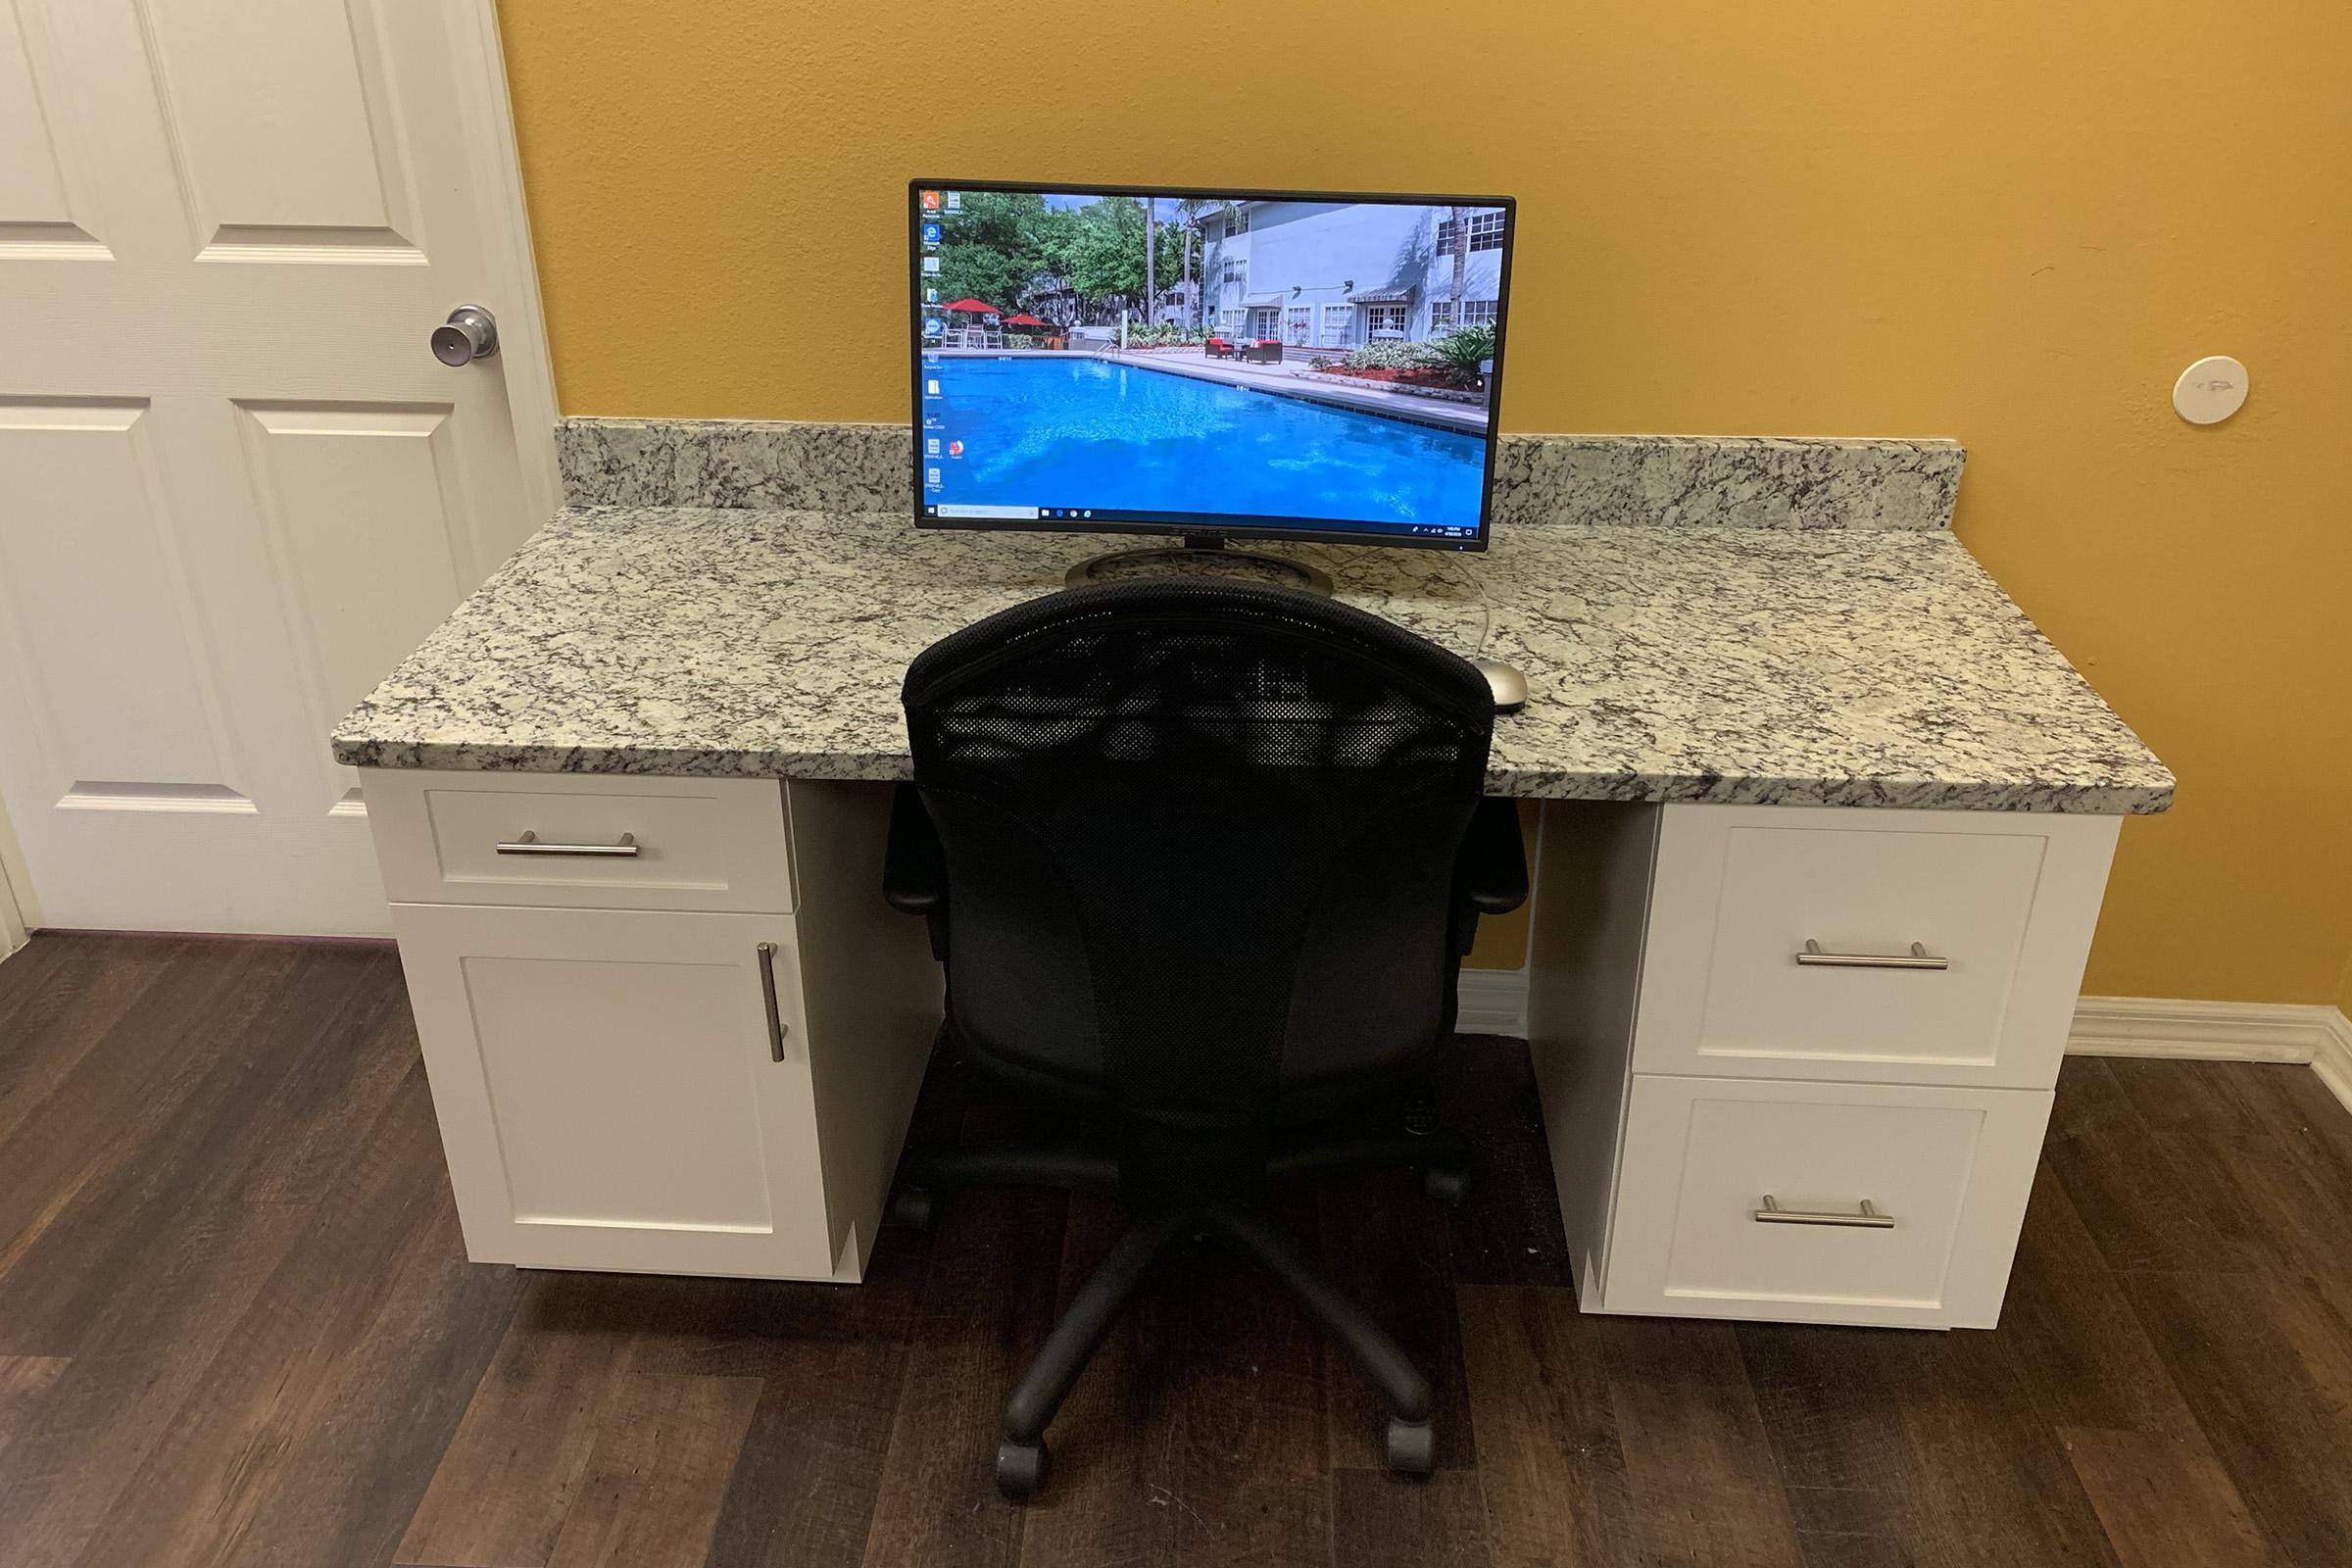 a desk with a computer